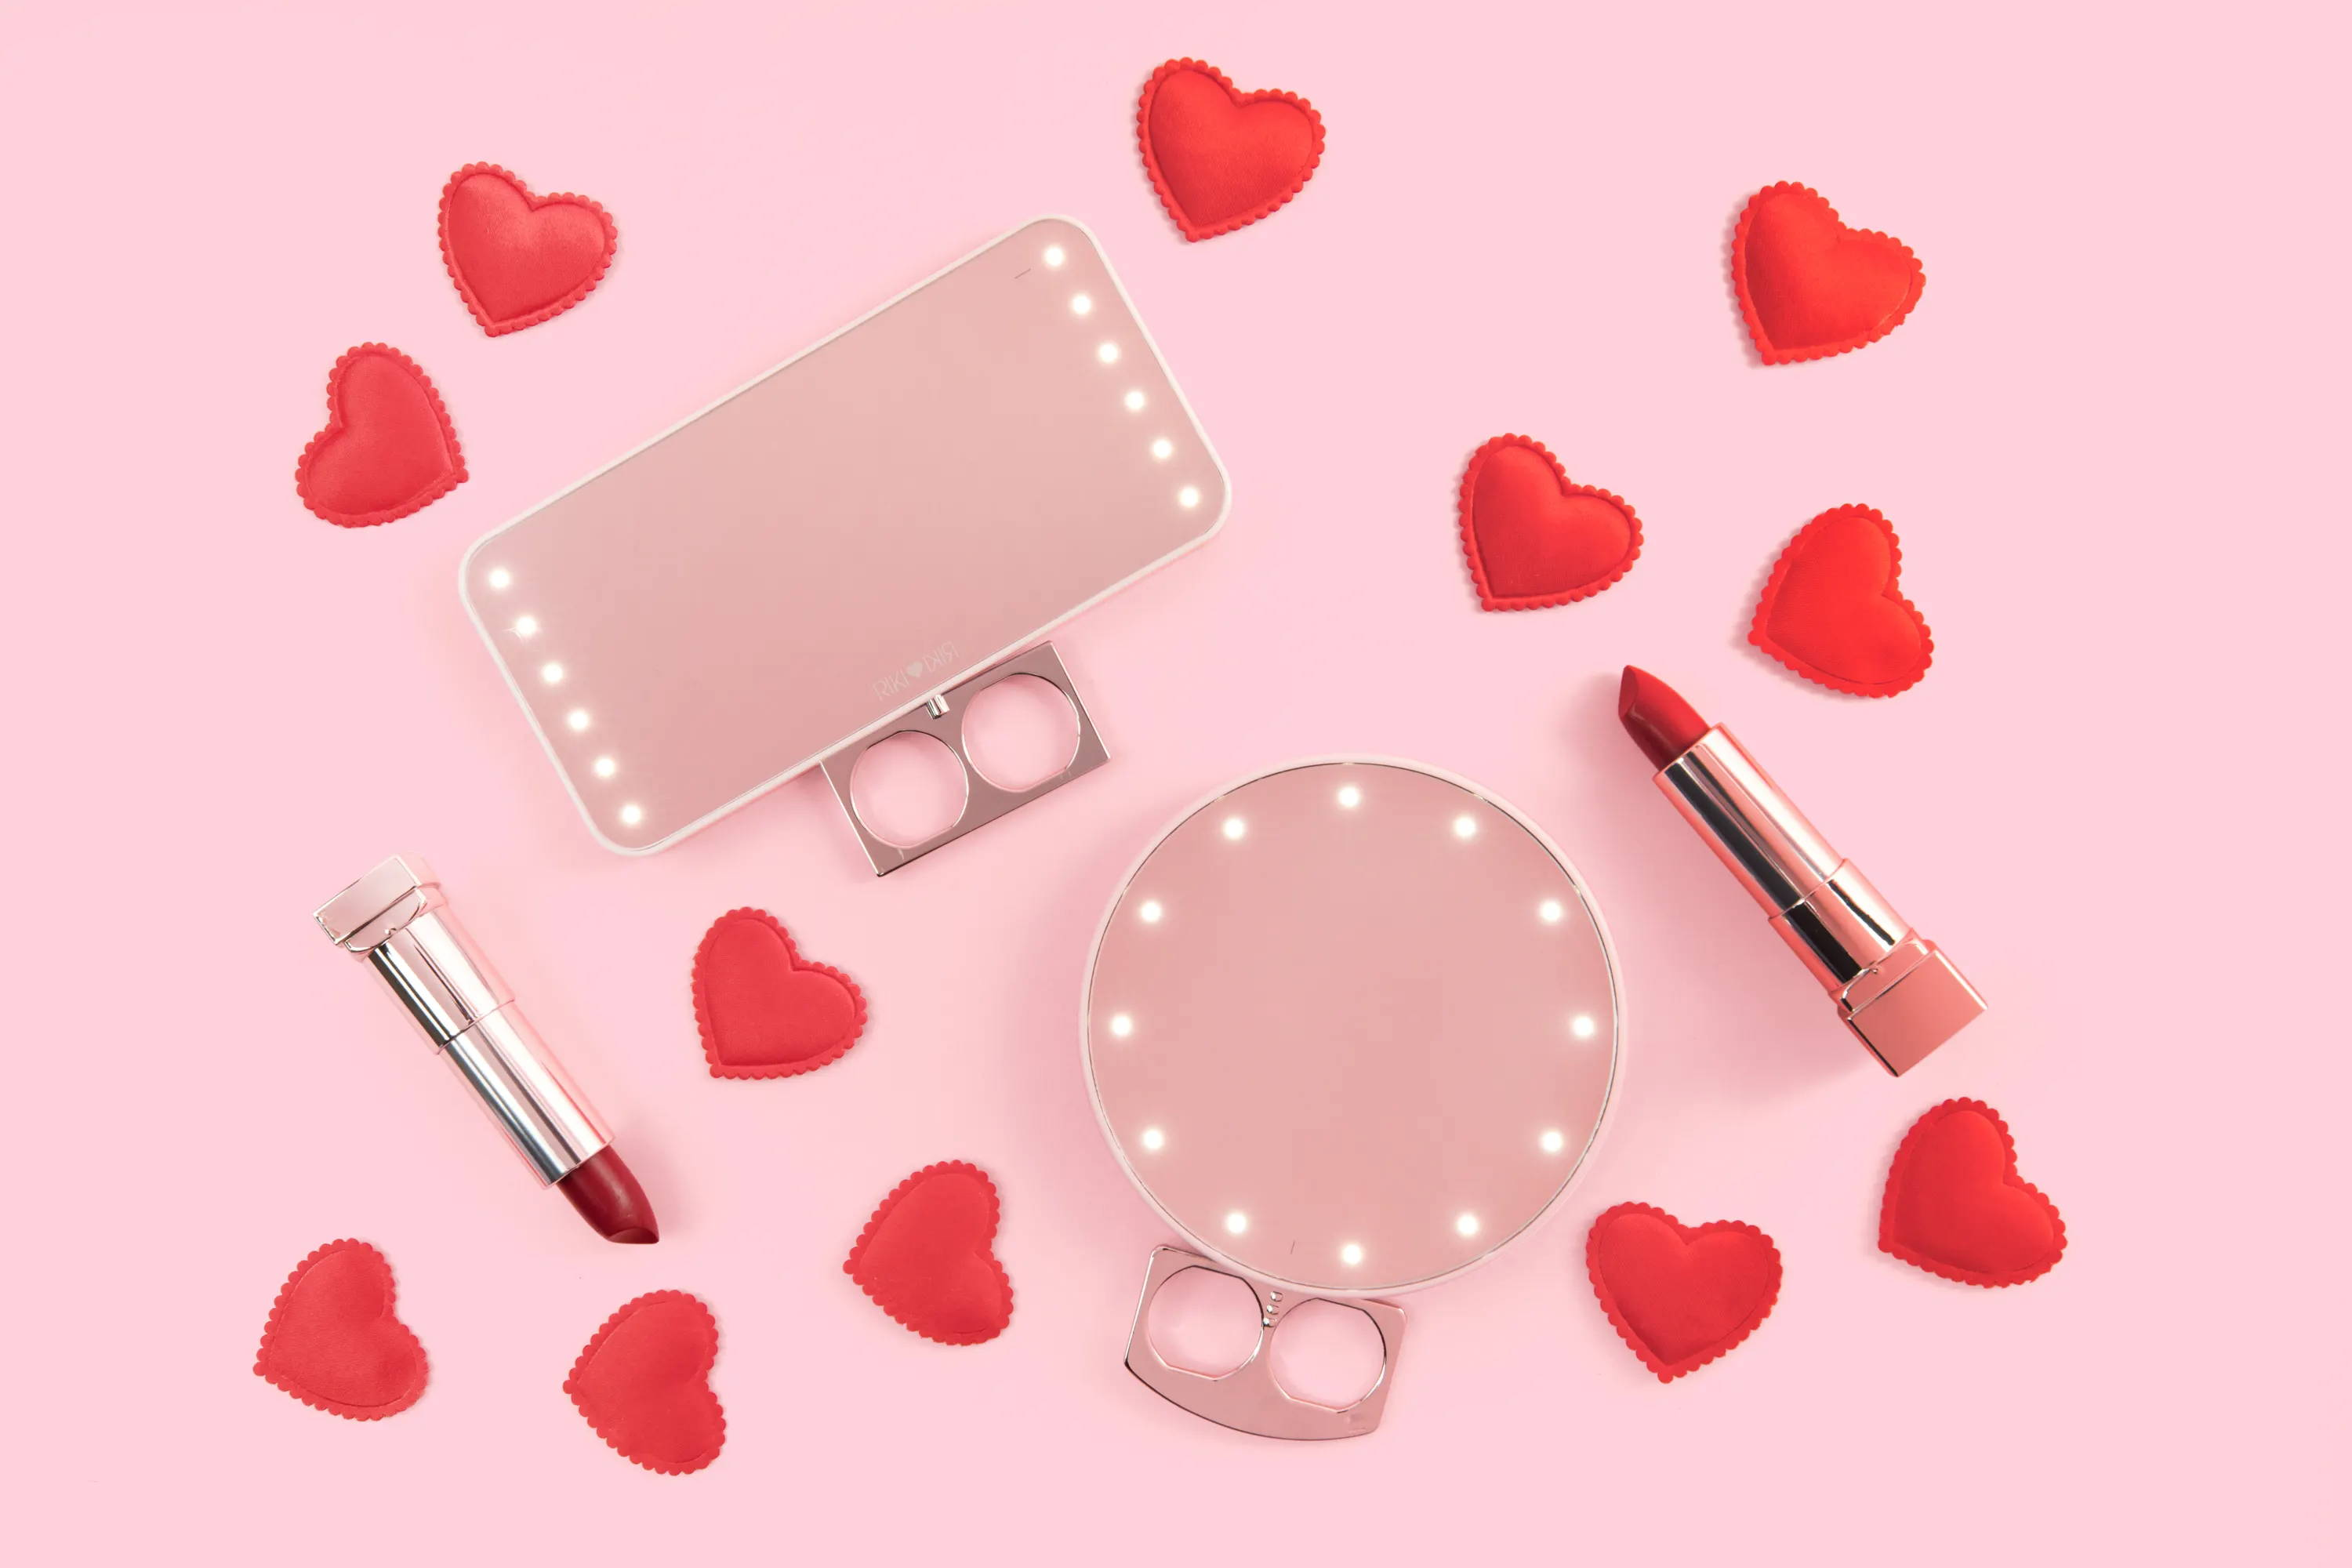 RIKI lighted mirrors are the ideal Valentine's Day gifts for your loved ones